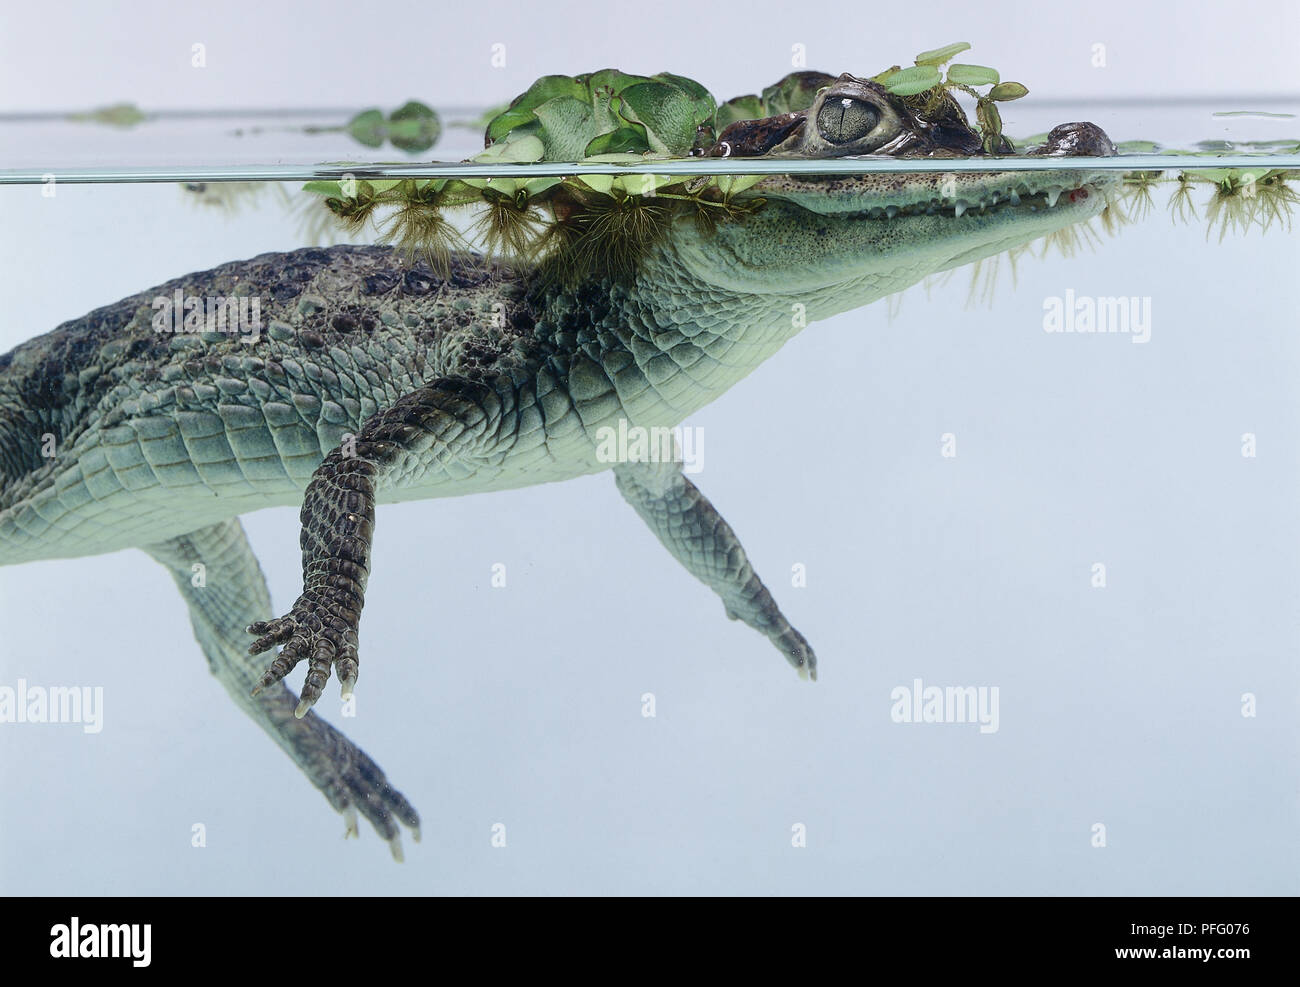 Side view of Spectacled Caiman, Caiman crocodilus, with head half-submerged covered in water weed. - Stock Image